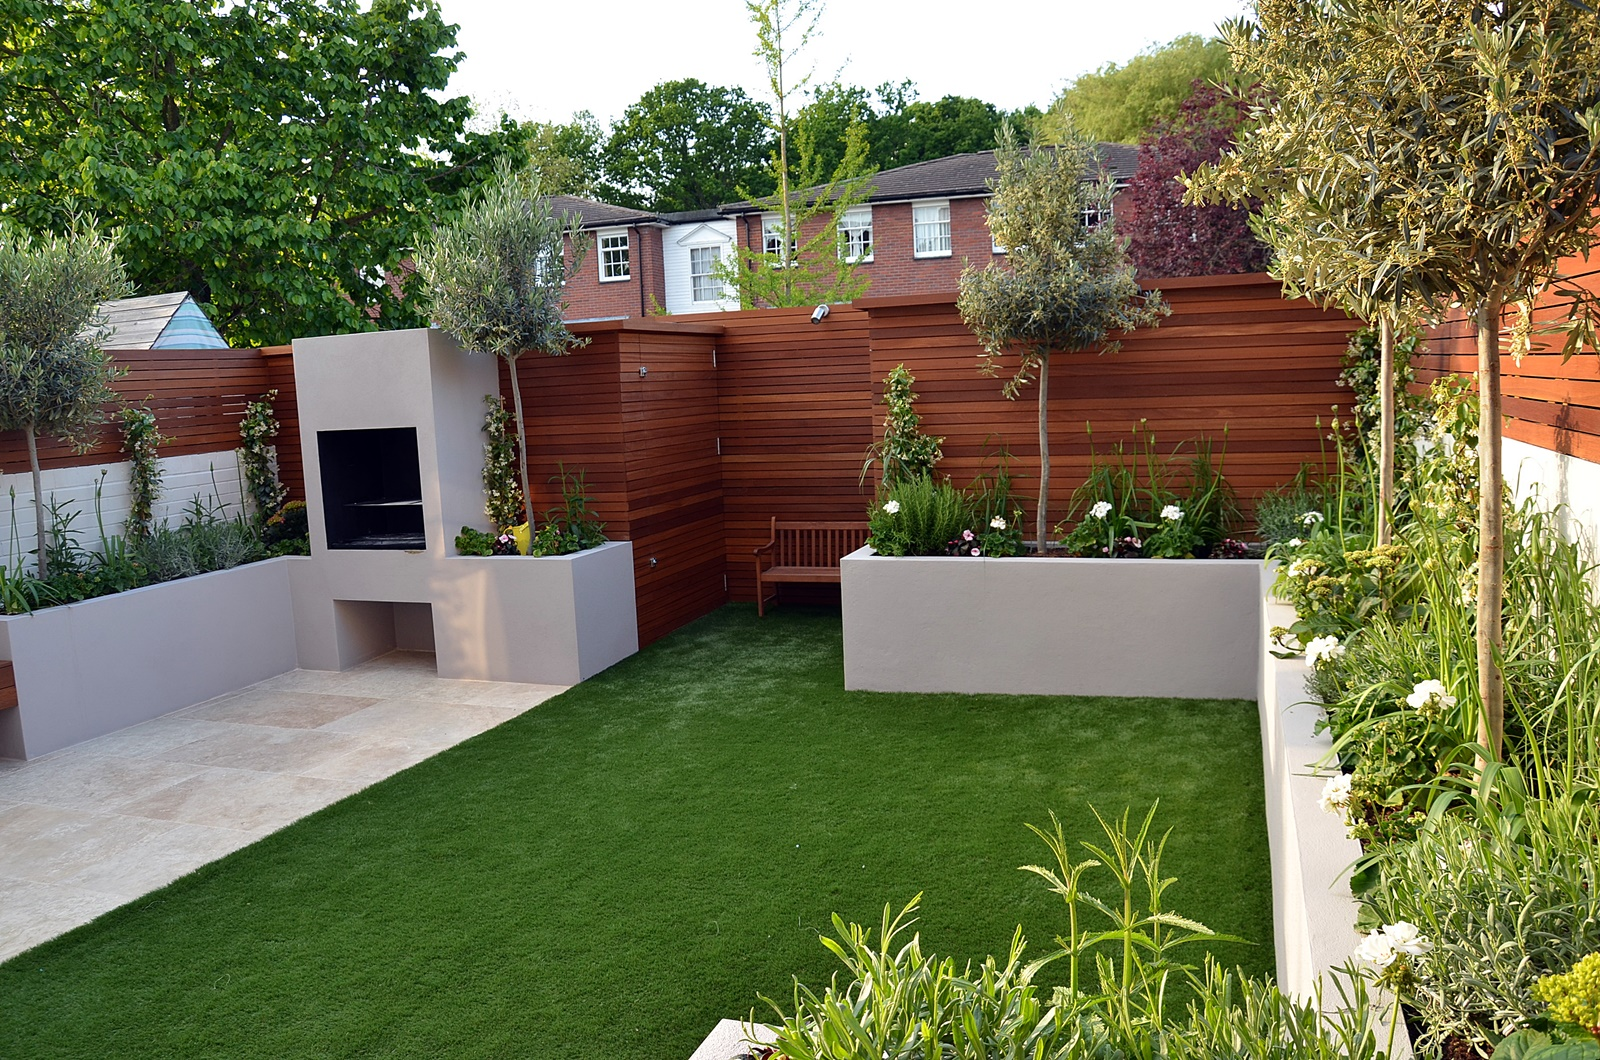 Modern garden design fulham chelsea clapham battersea for Garden design images